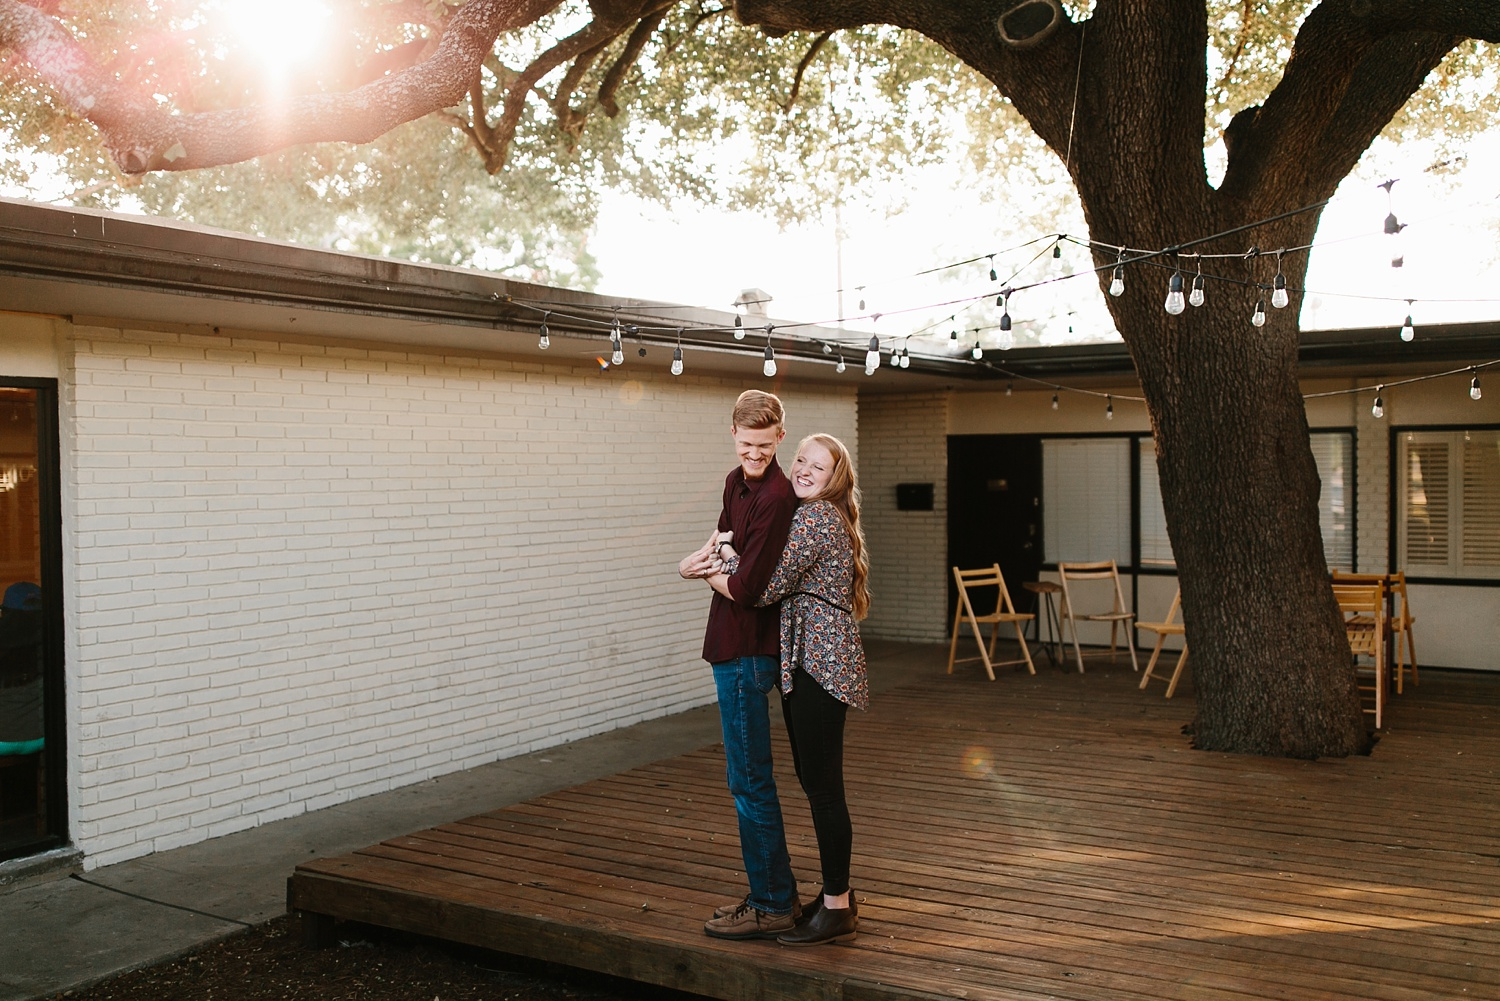 Kayla + Alex _ a joyful and loving engagement shoot in Waco, Texas by North Texas Wedding Photographer Rachel Meagan Photography _15